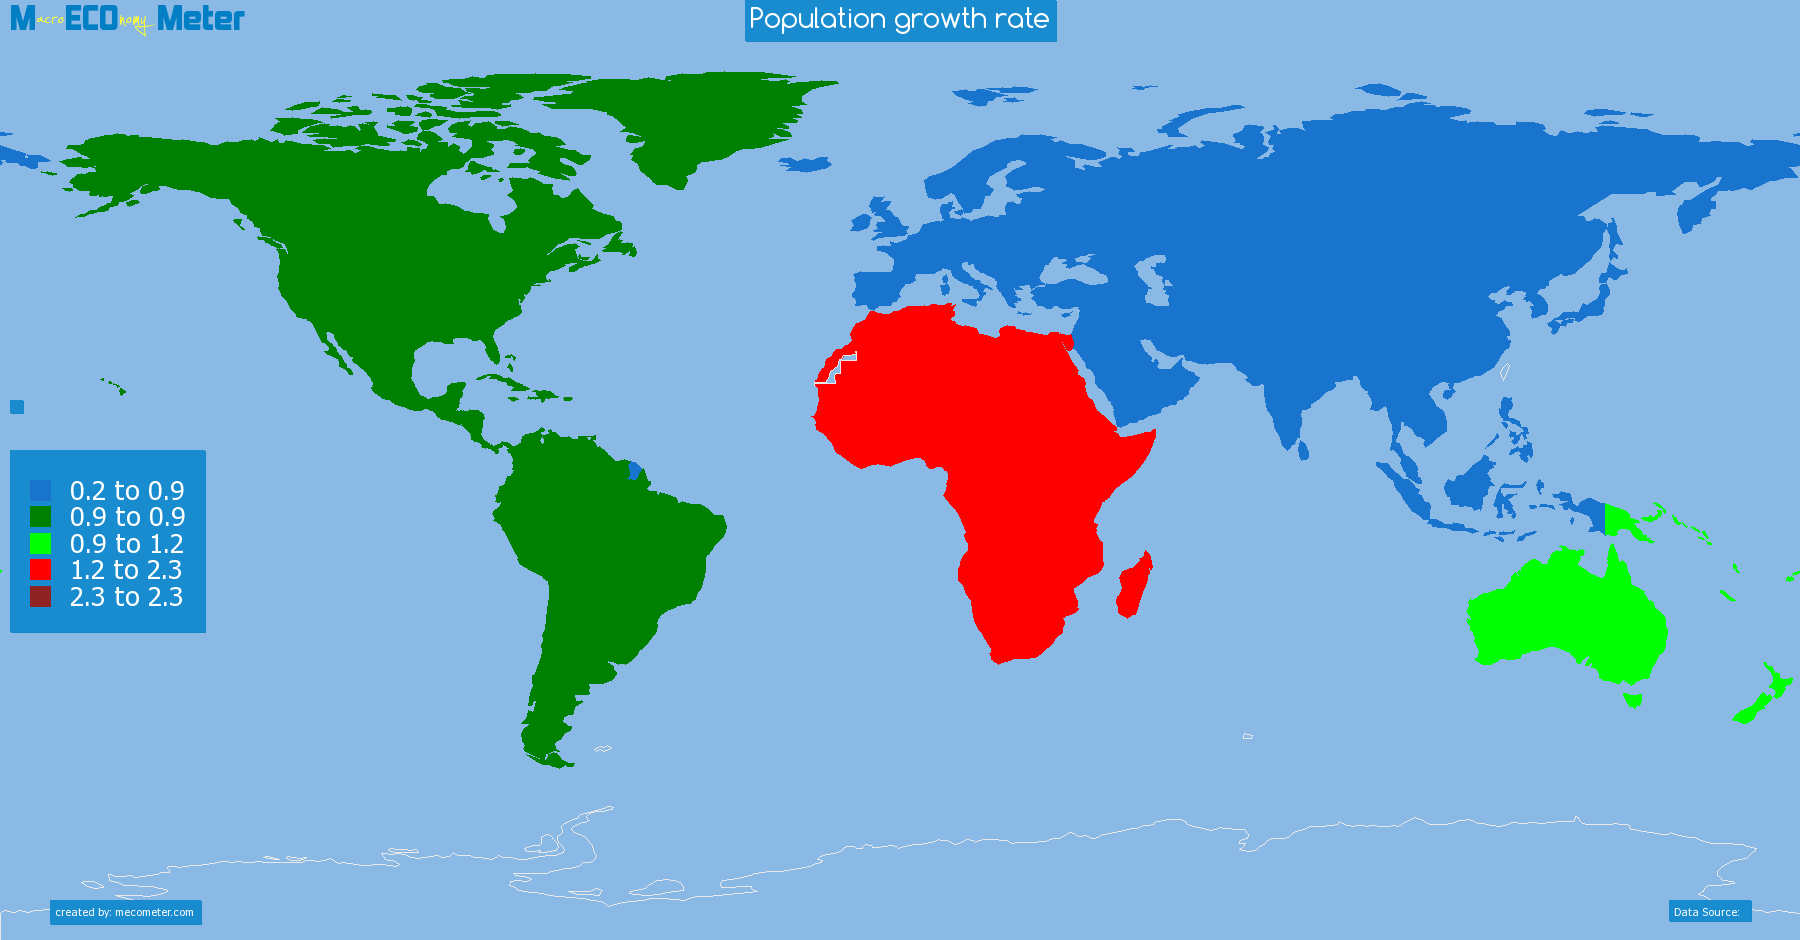 Population growth rate by continent